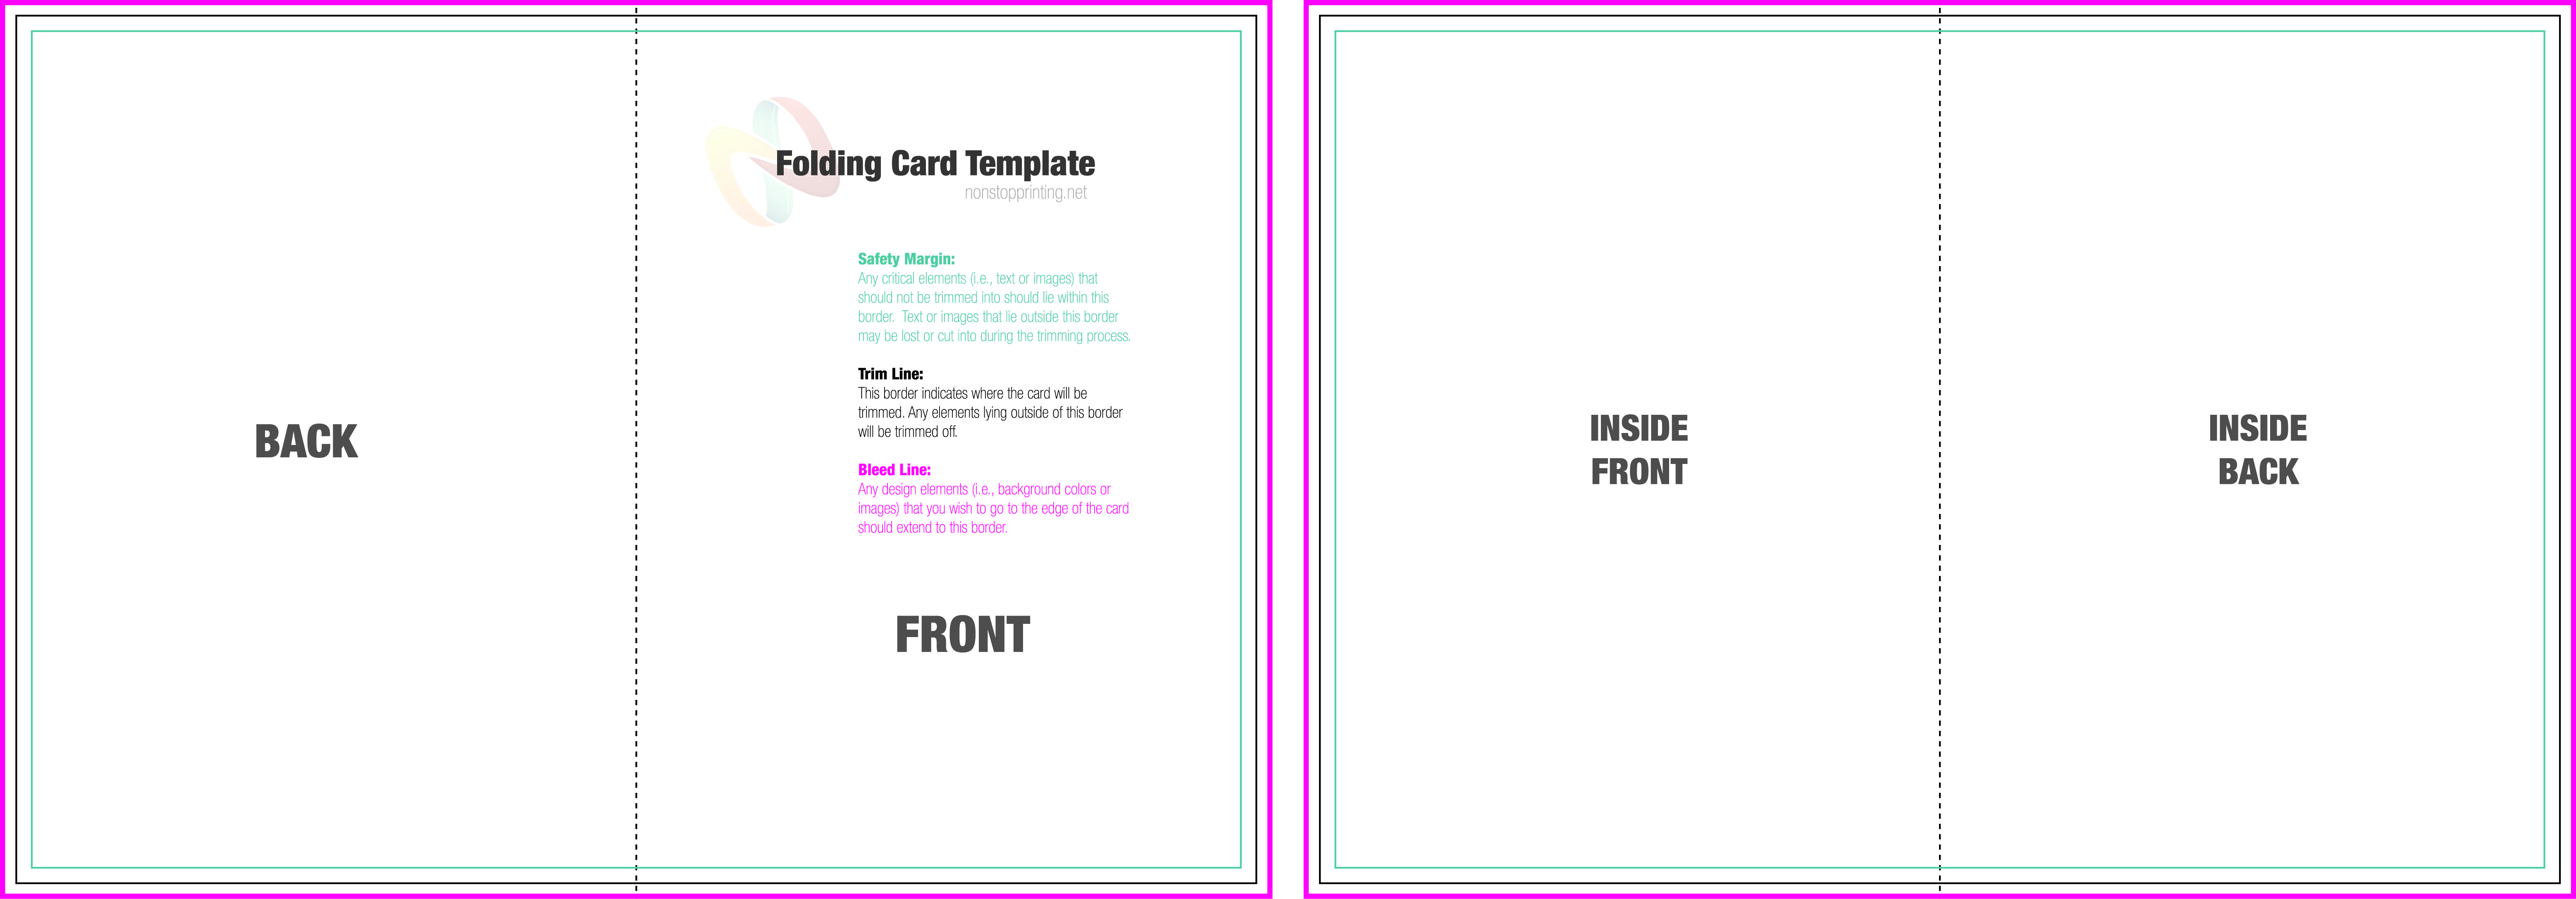 5x7 greeting card template Narco.penantly.co